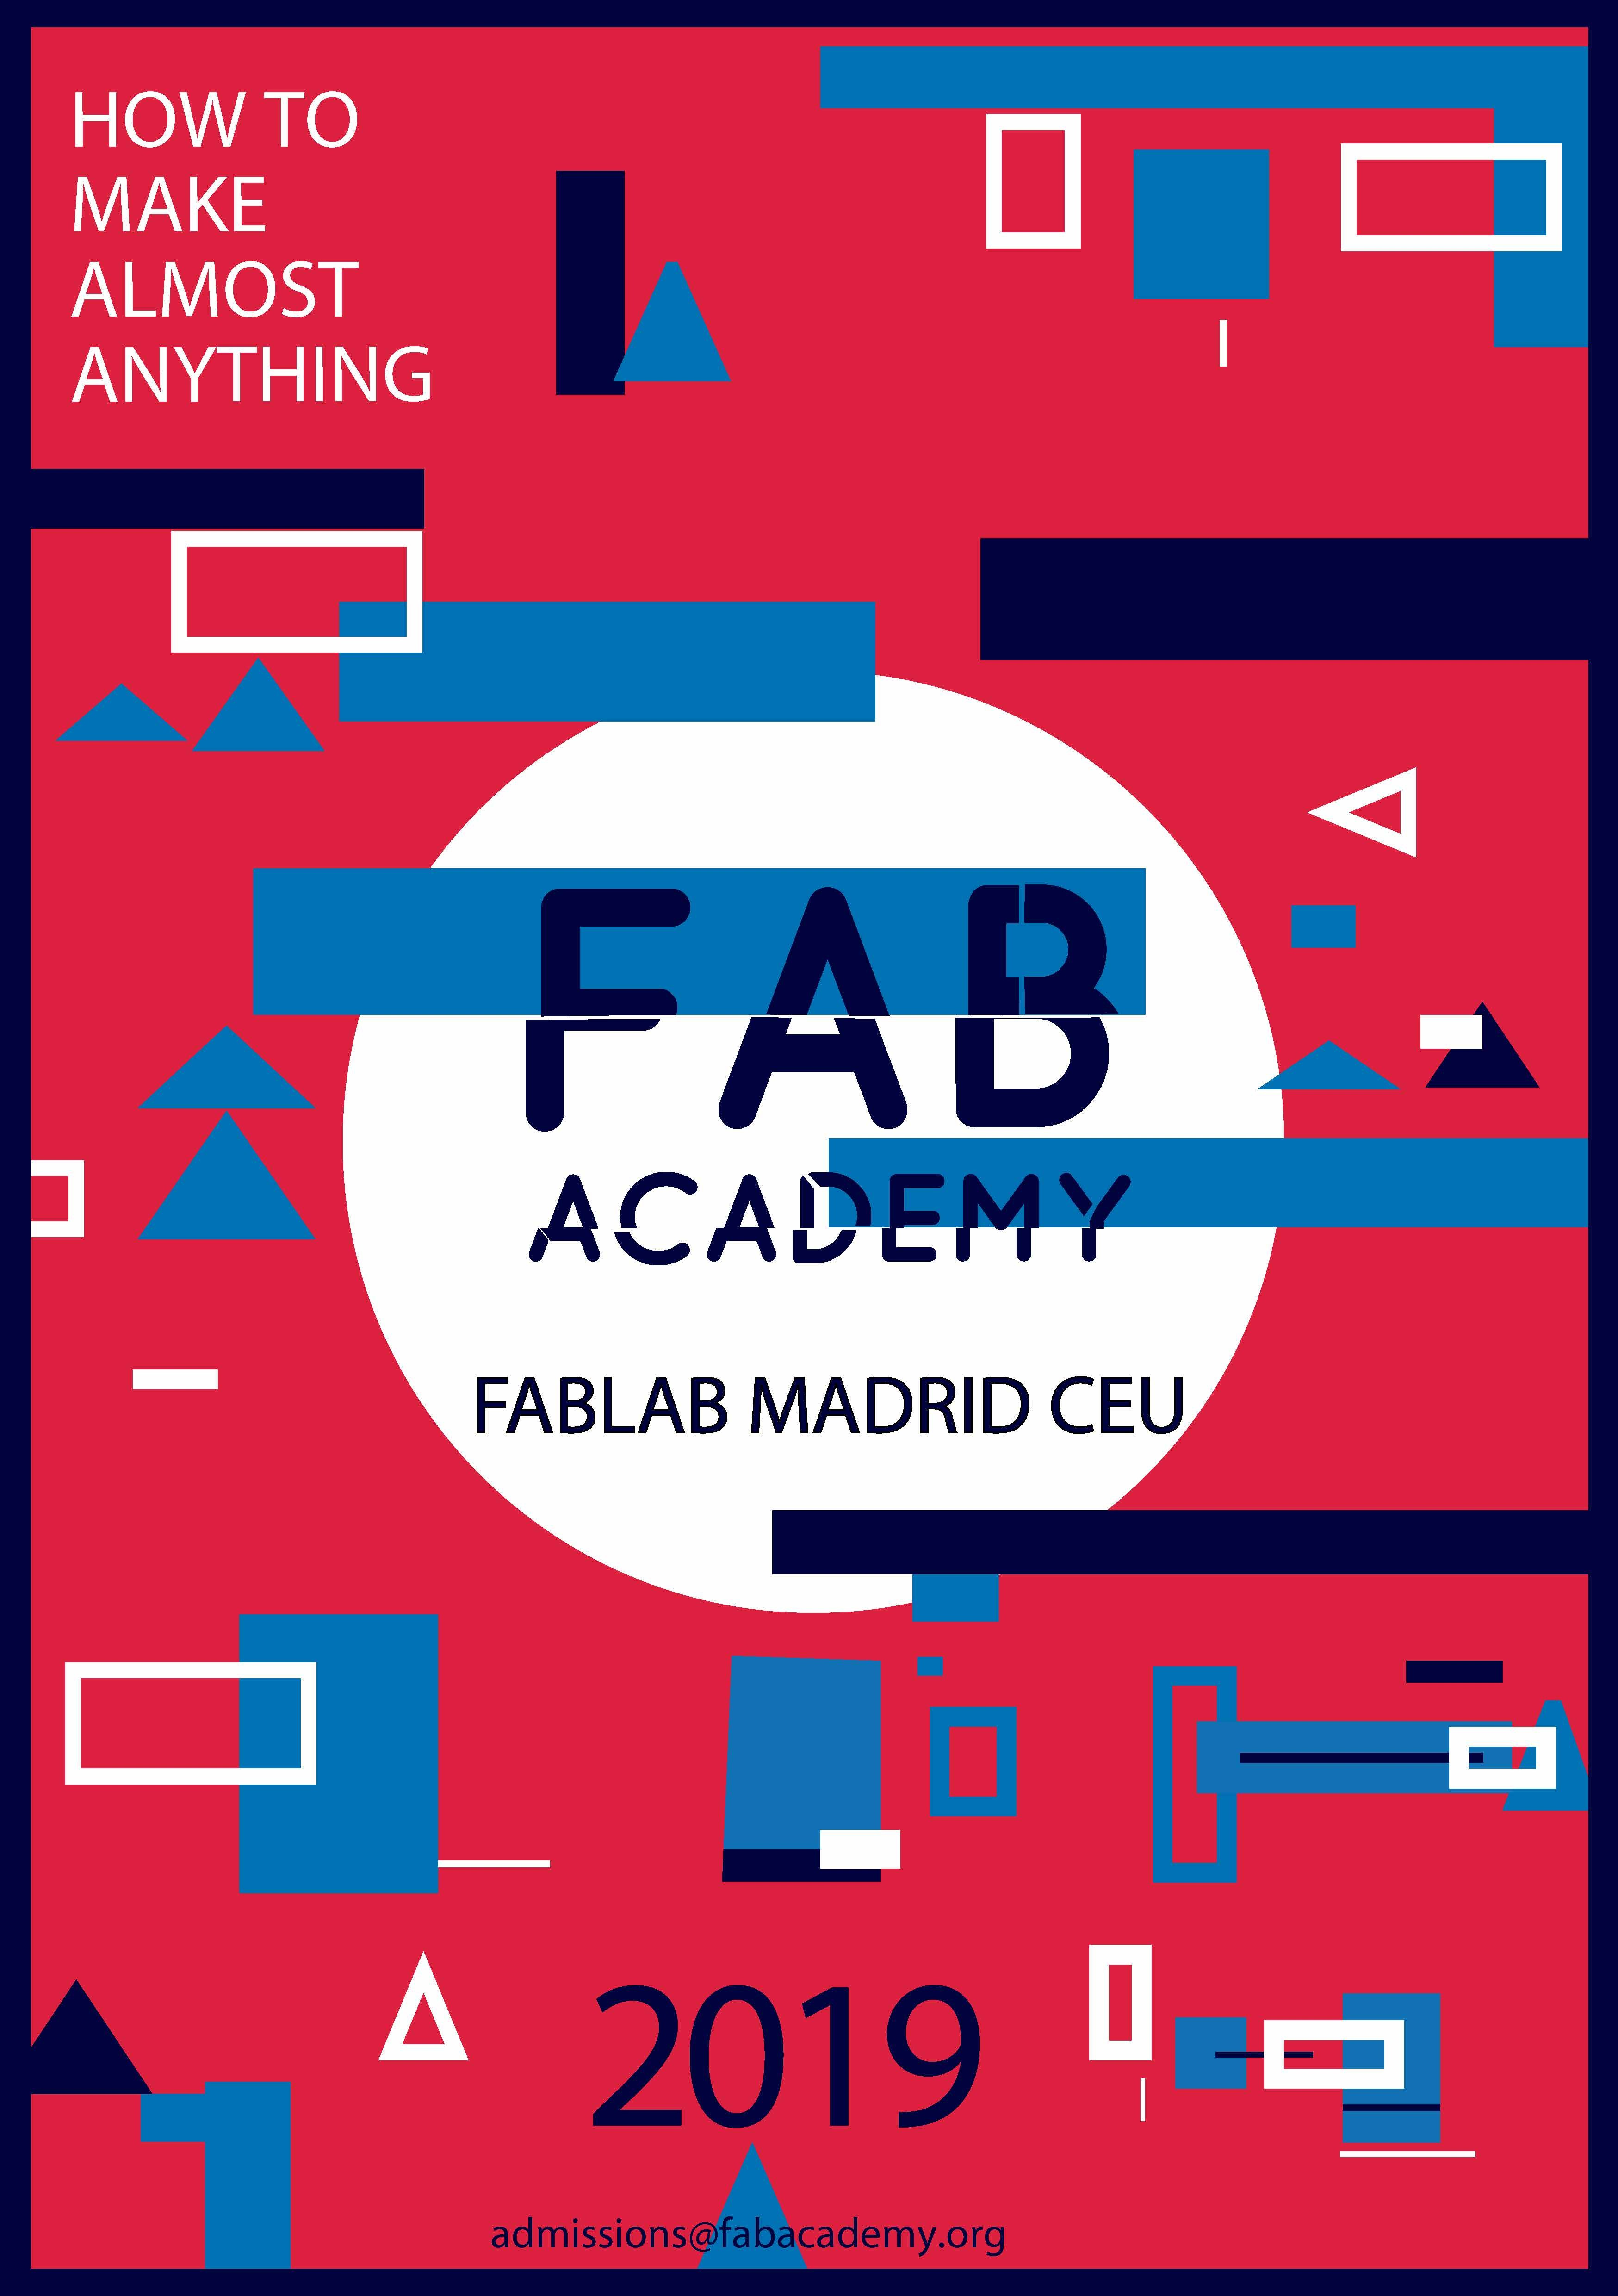 Calendario Escolar 2019 Madrid Para Imprimir Más Caliente Prensa – Fablab Madrid Ceu Of Calendario Escolar 2019 Madrid Para Imprimir Más Actual Verificar Calendario Escolar 2019 Y 2019 Para Imprimir